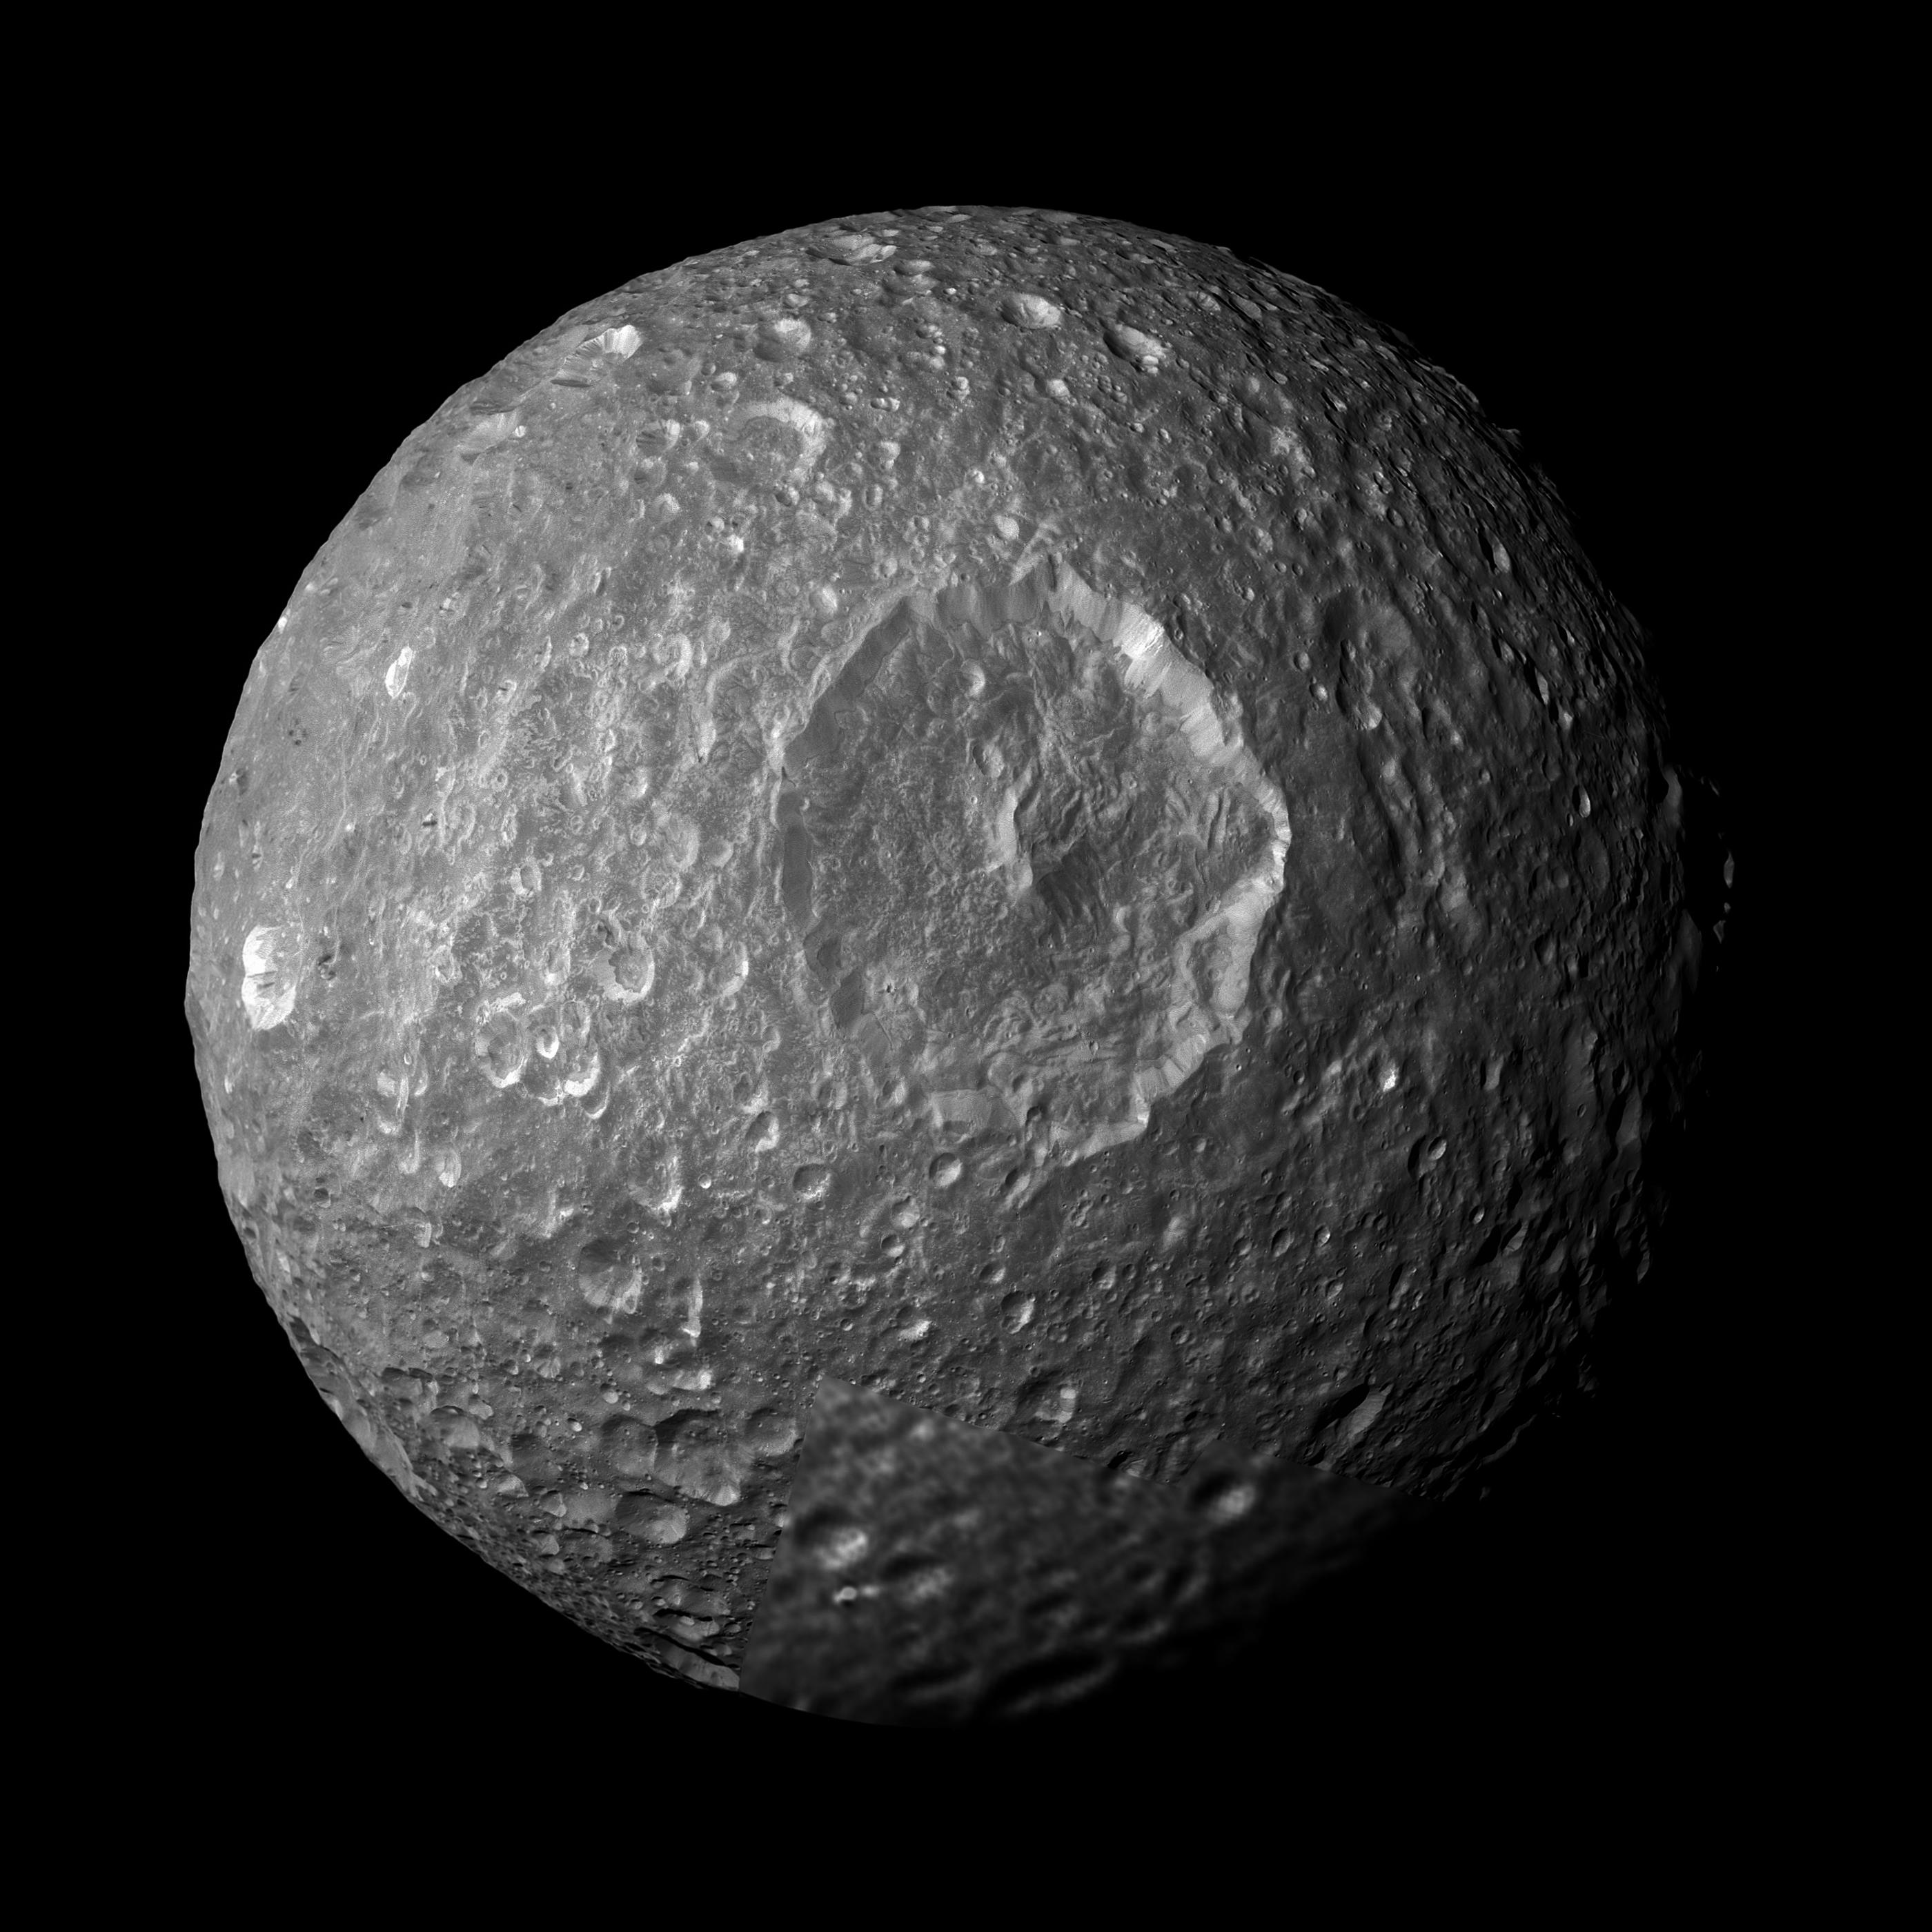 Mimas: Saturn's Death Star Moon